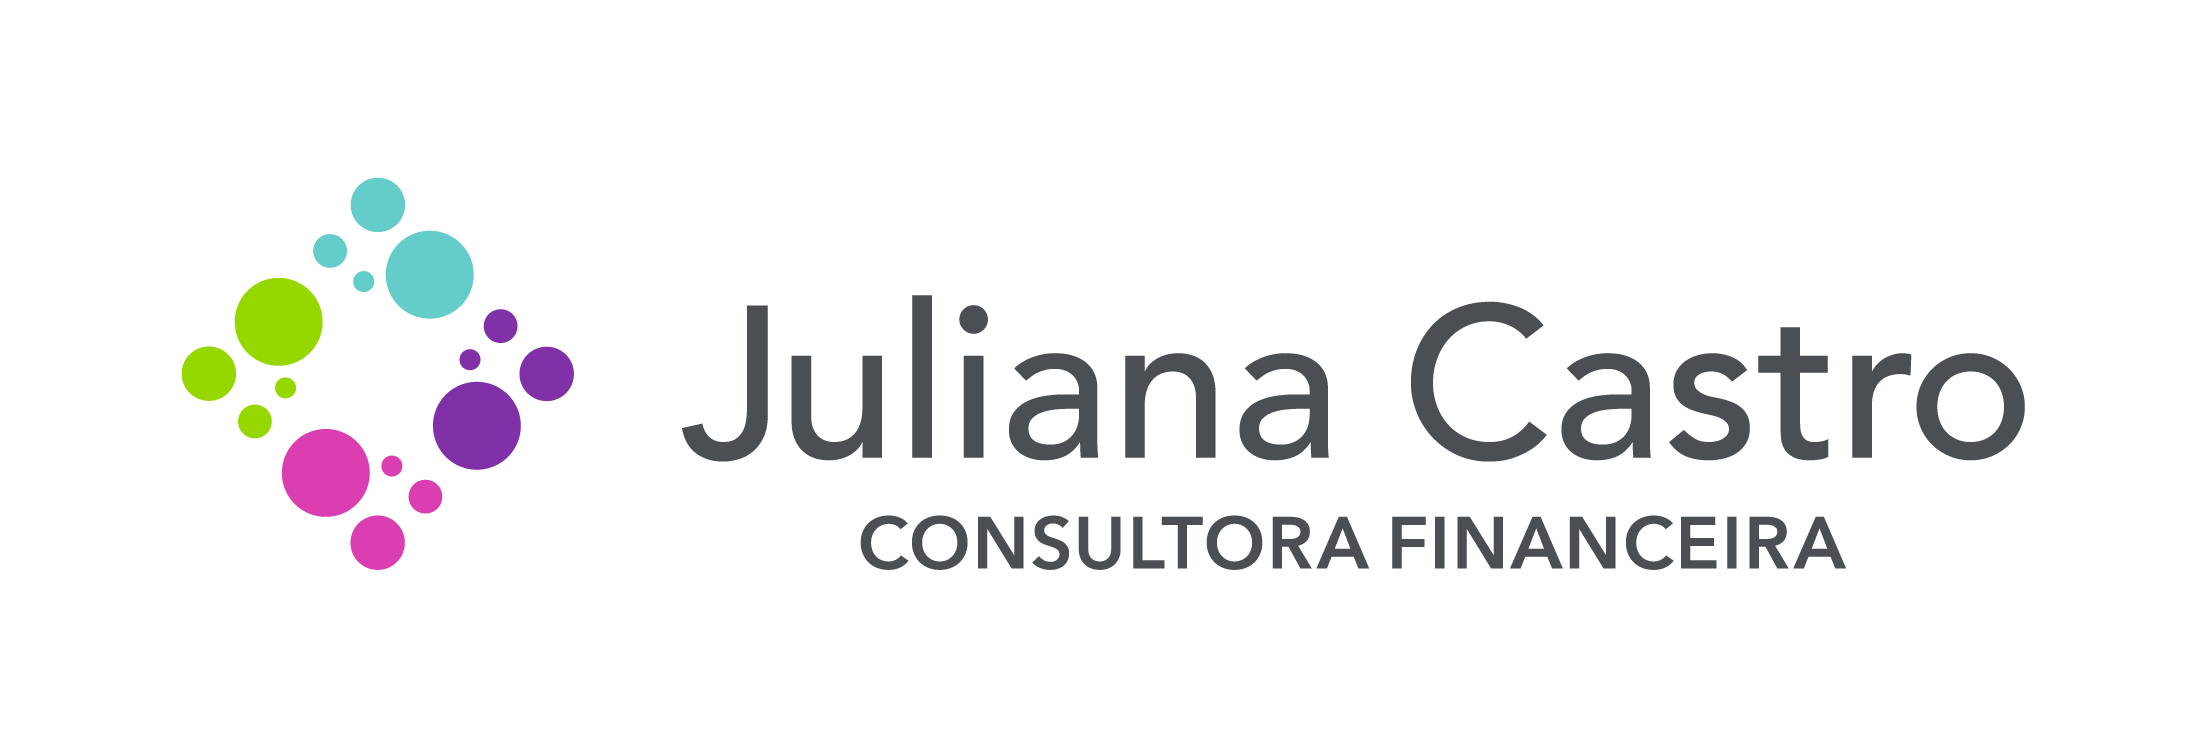 Juliana Castro - Consultora Financeira